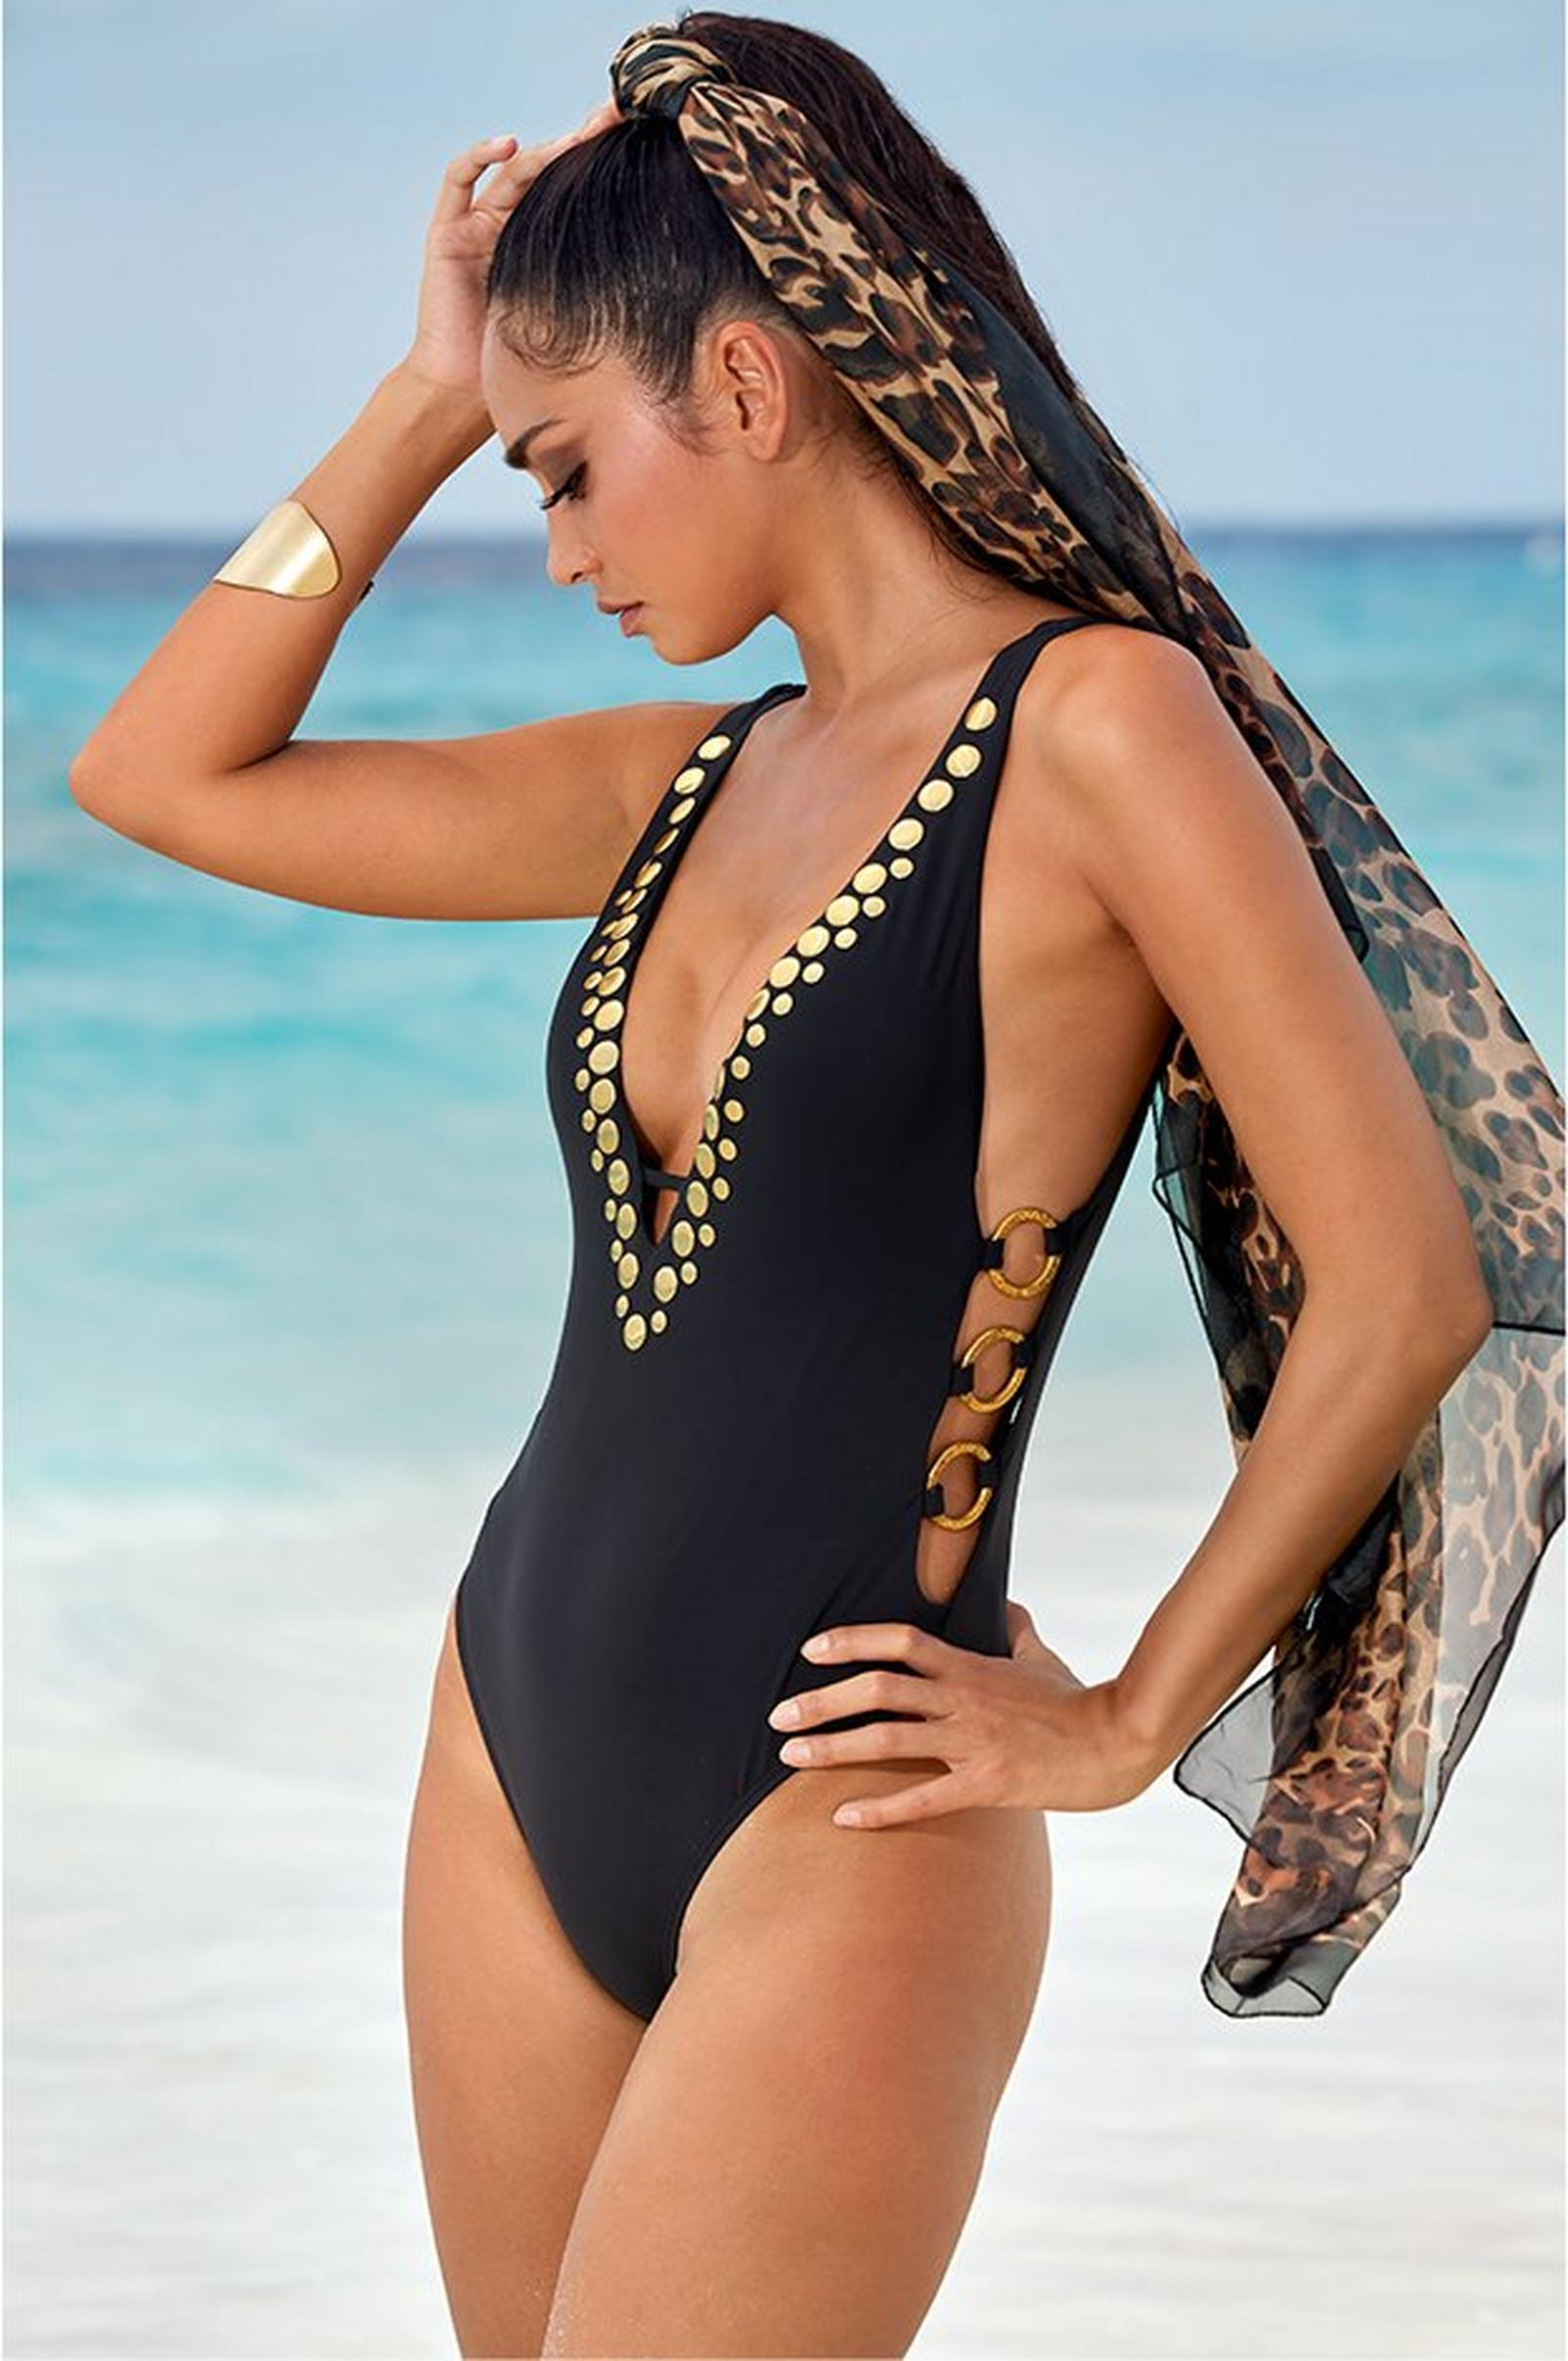 model wearing a gold embellished black one-piece swimsuit with a deep plunging neckline and a black and gold hair scarf.